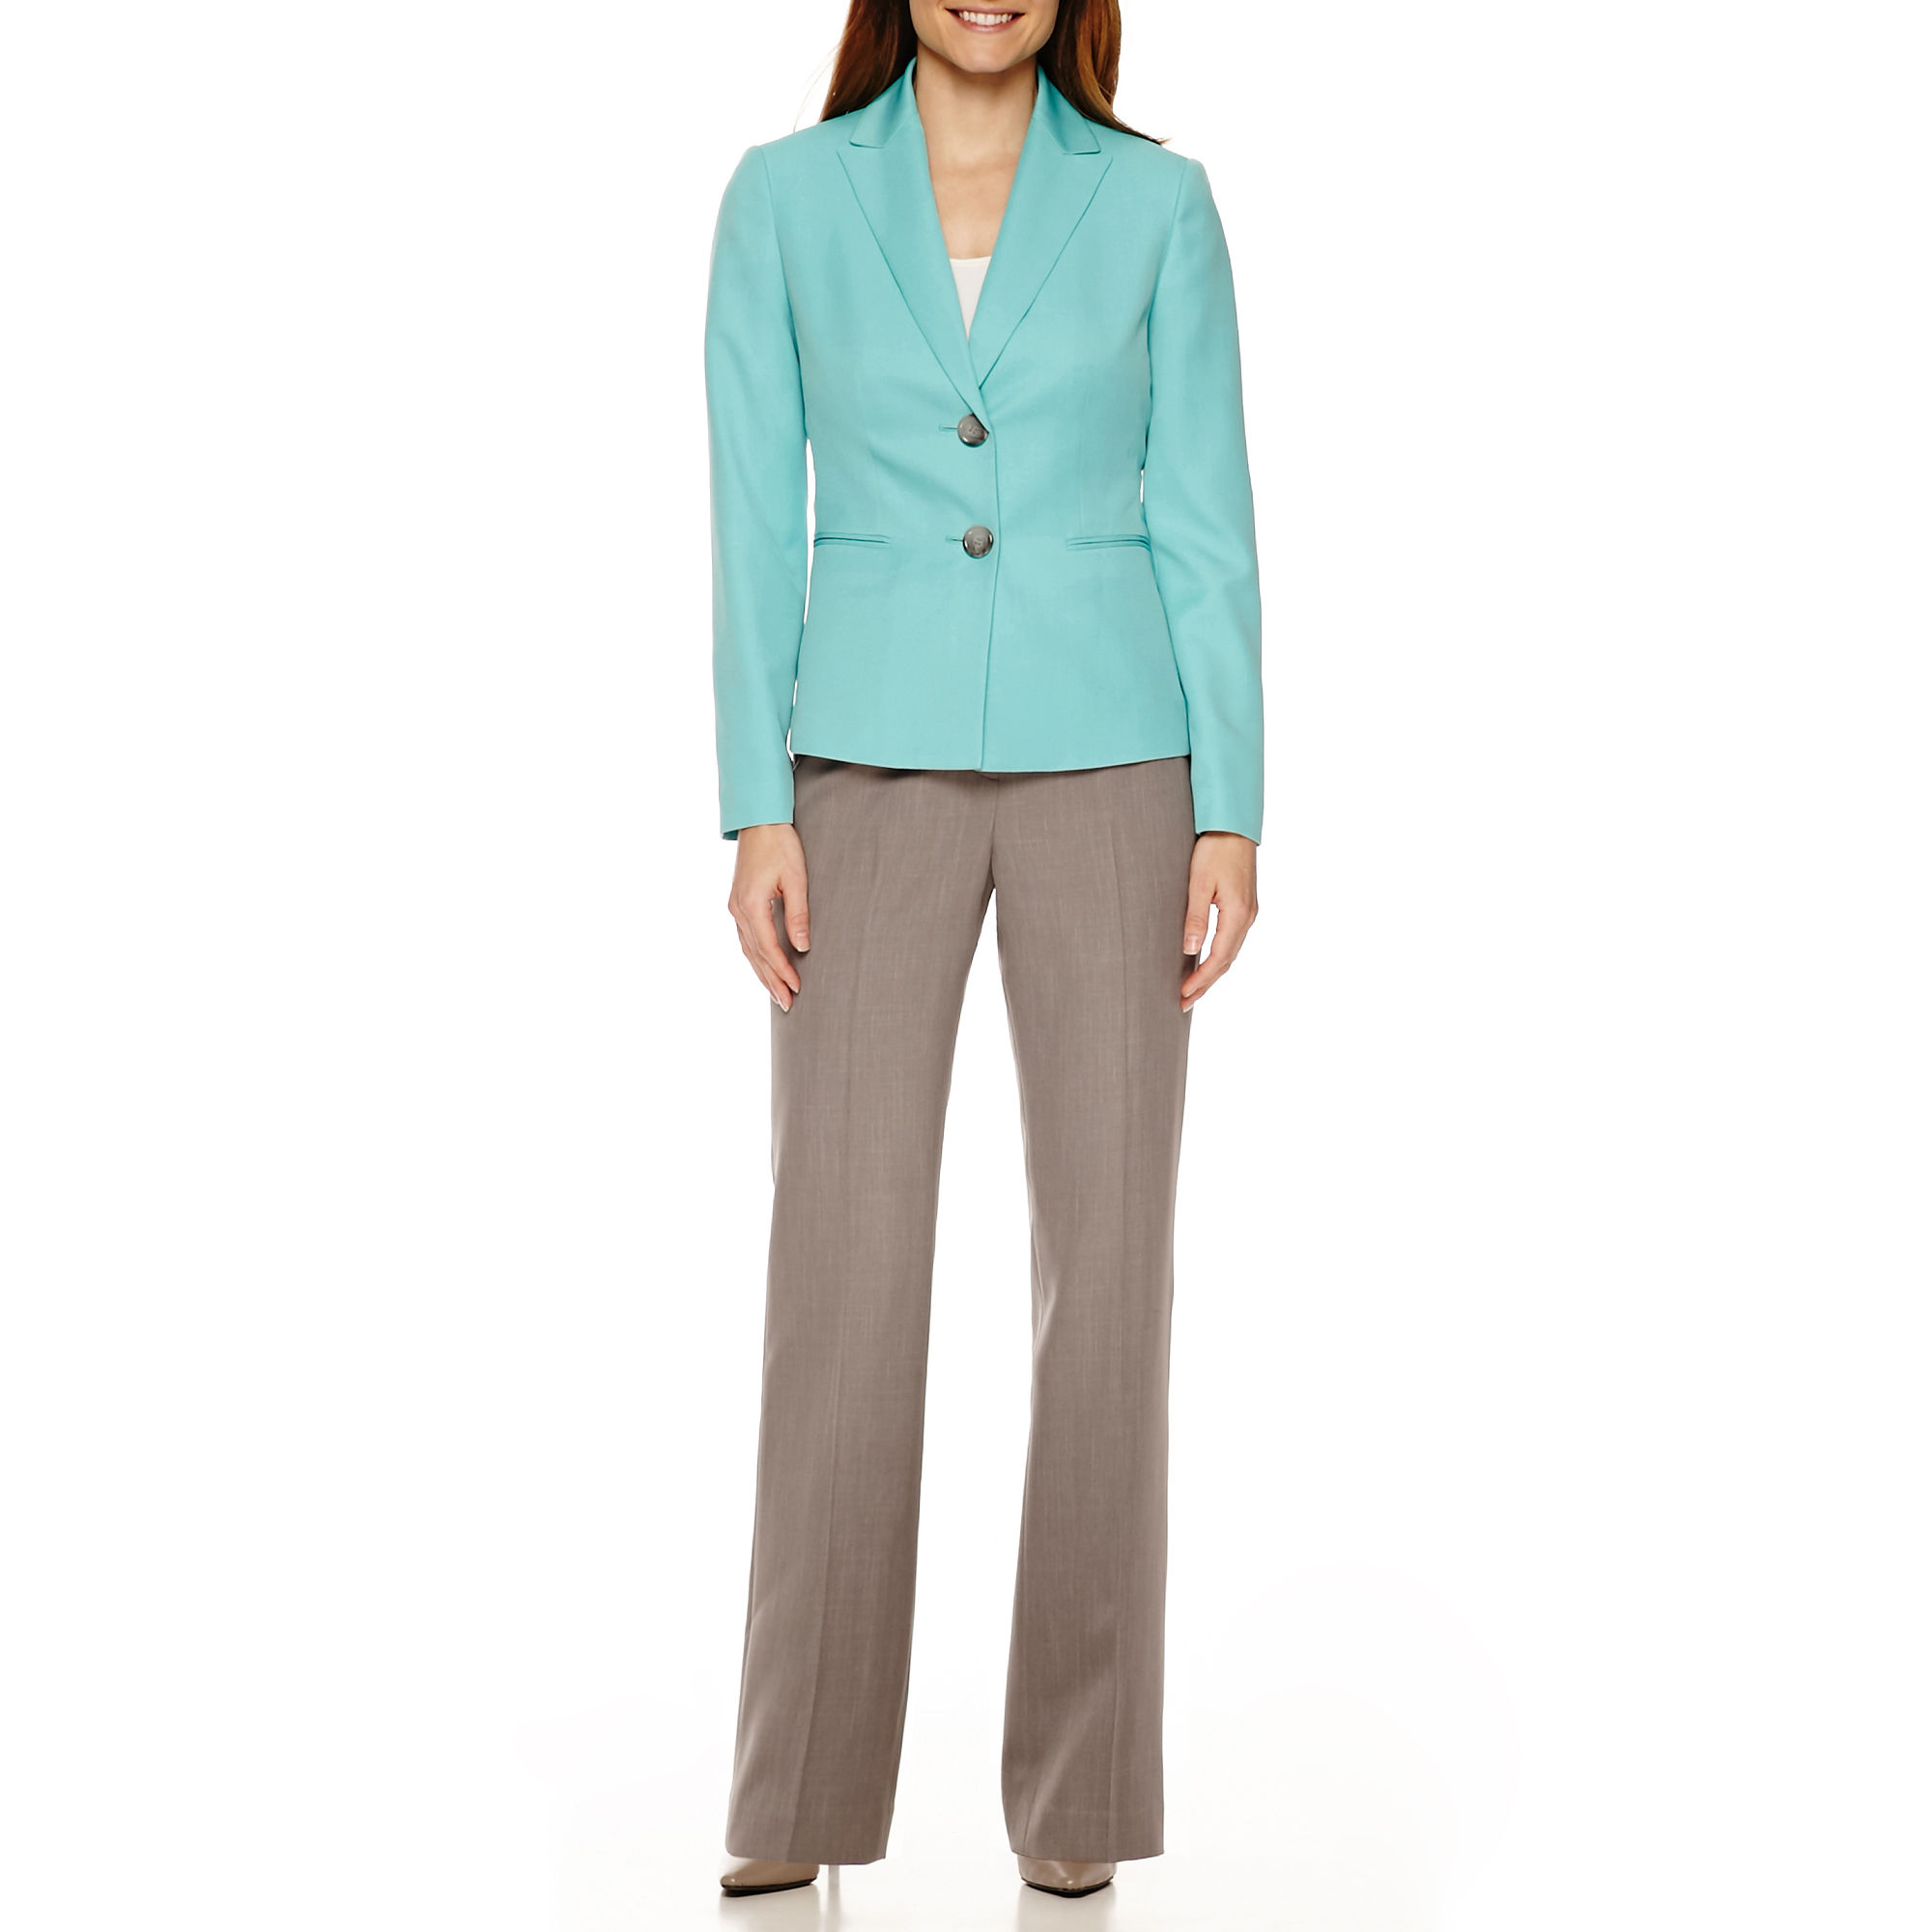 Simple Evening Pant Suits  Pantsuits For Women